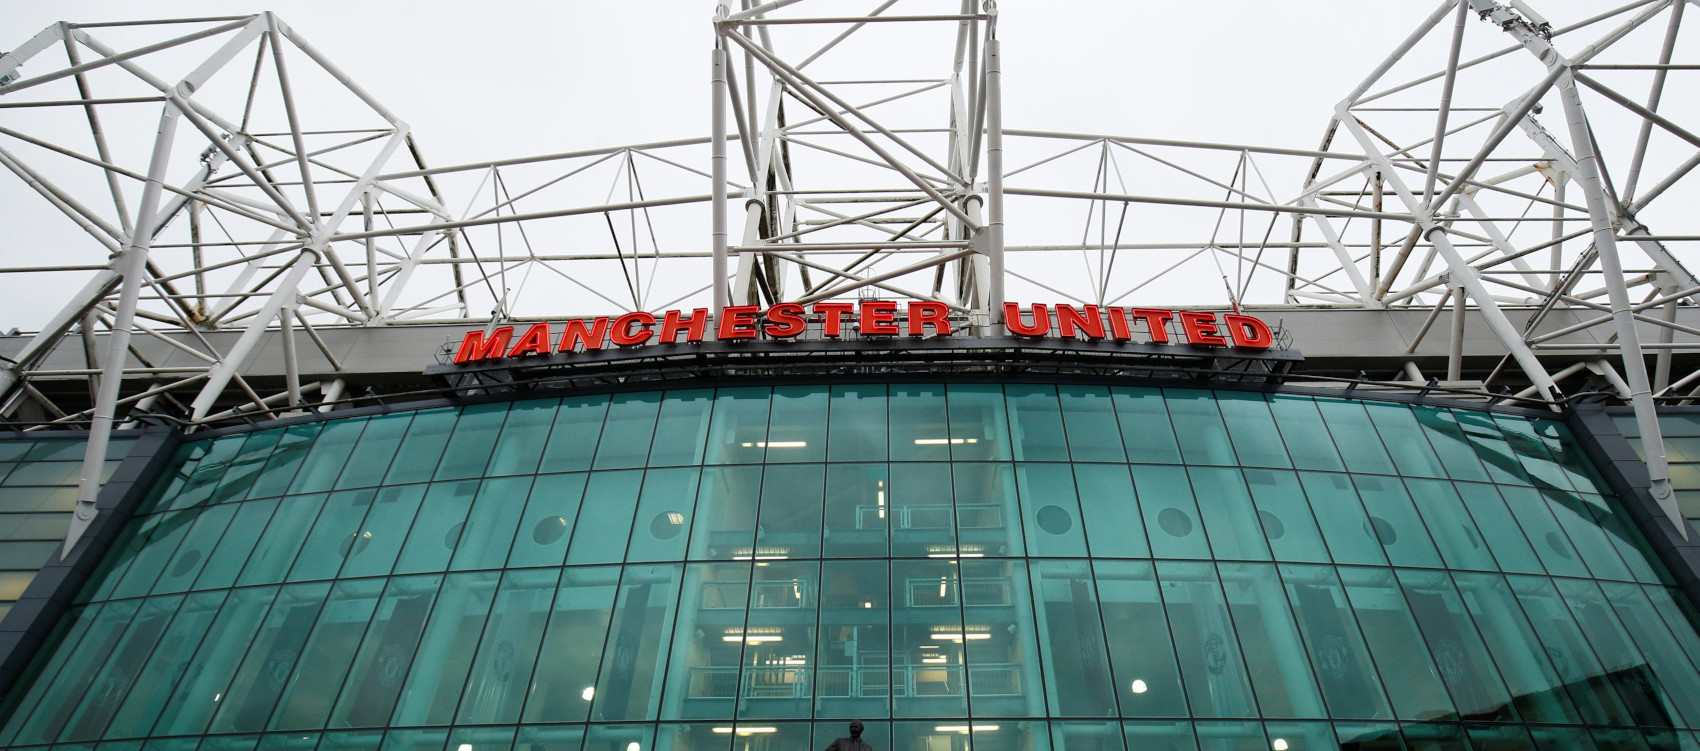 → Why was Manchester United's Gameweek 38 clash with Bournemouth abandoned and put back two days?